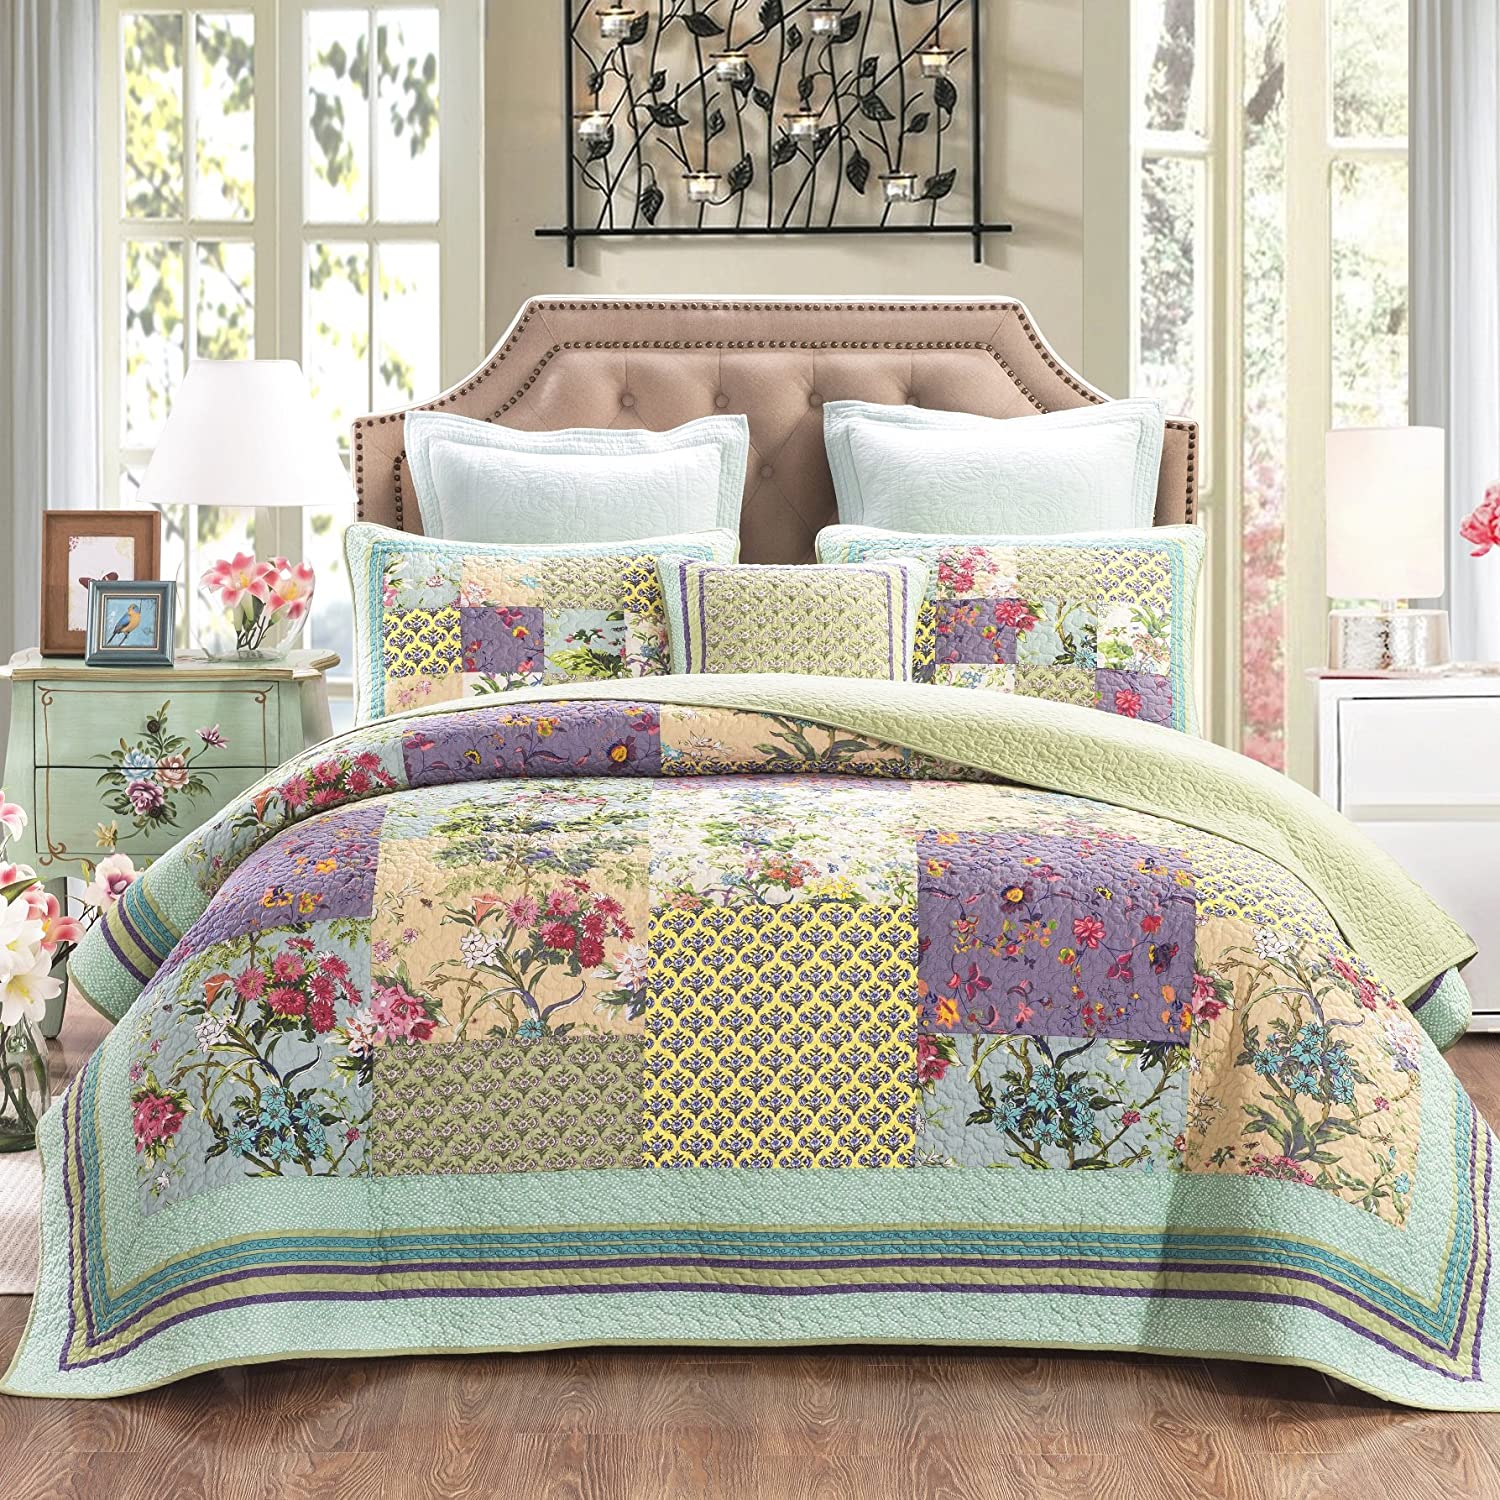 ip piece comforter bohemian grey walmart set quilt better homes bedding and gardens medallion com